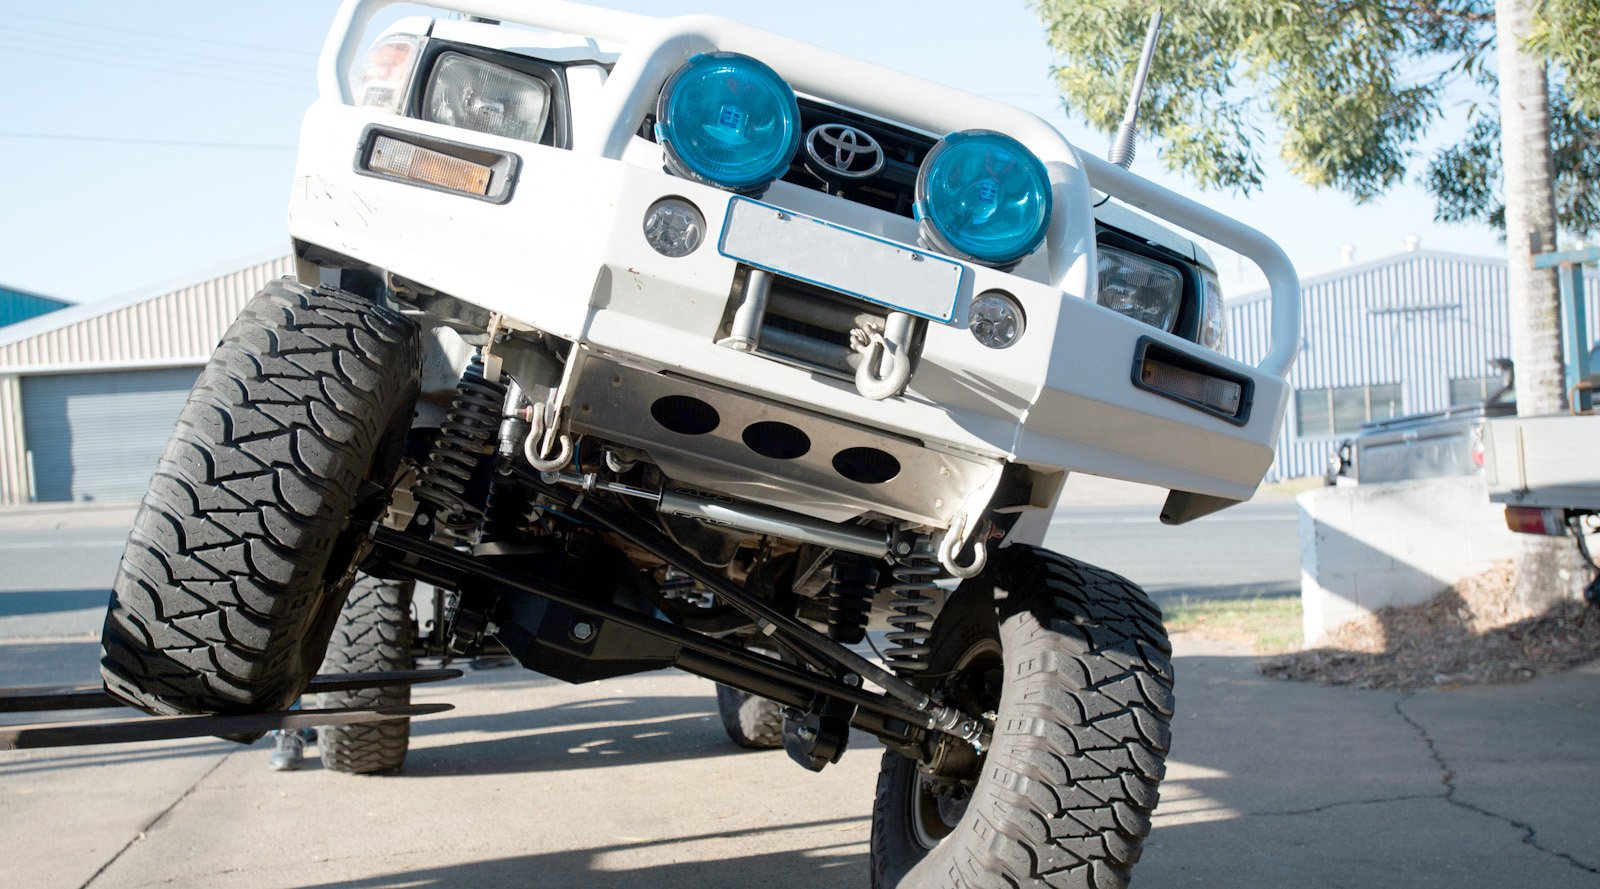 Solid Axle Swaps for the 2005 and on Hilux